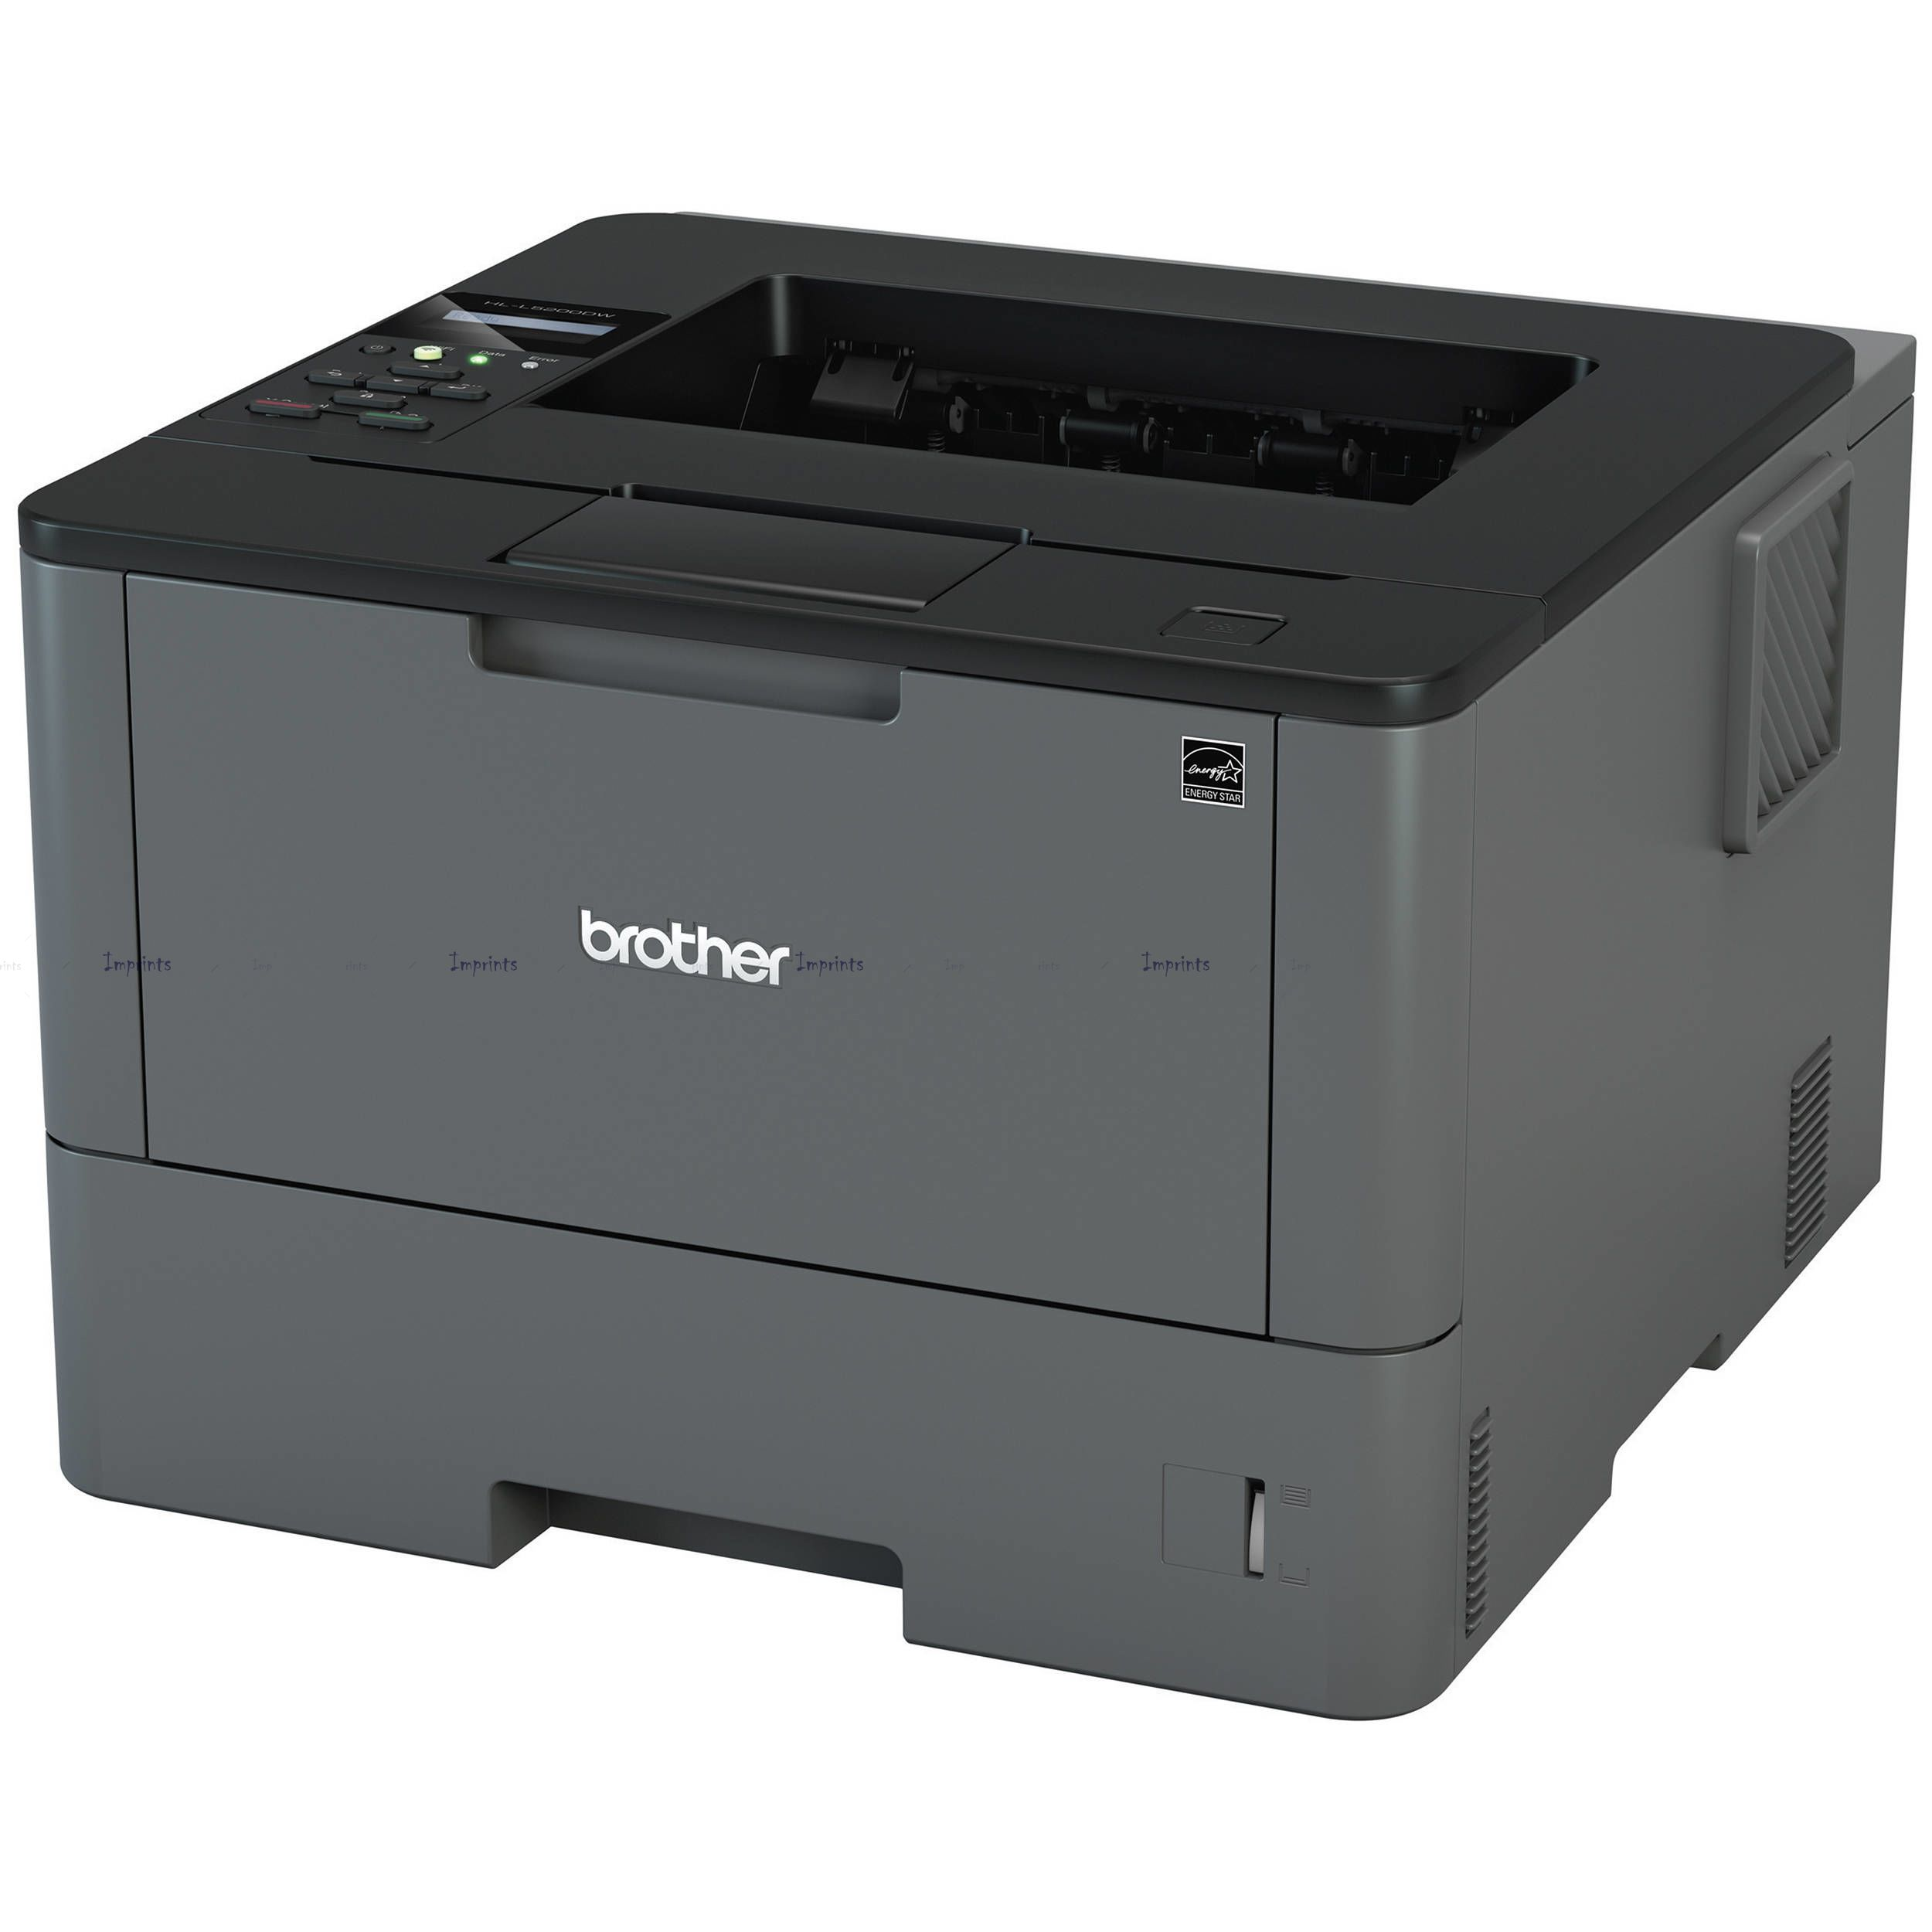 Brother HL 5200